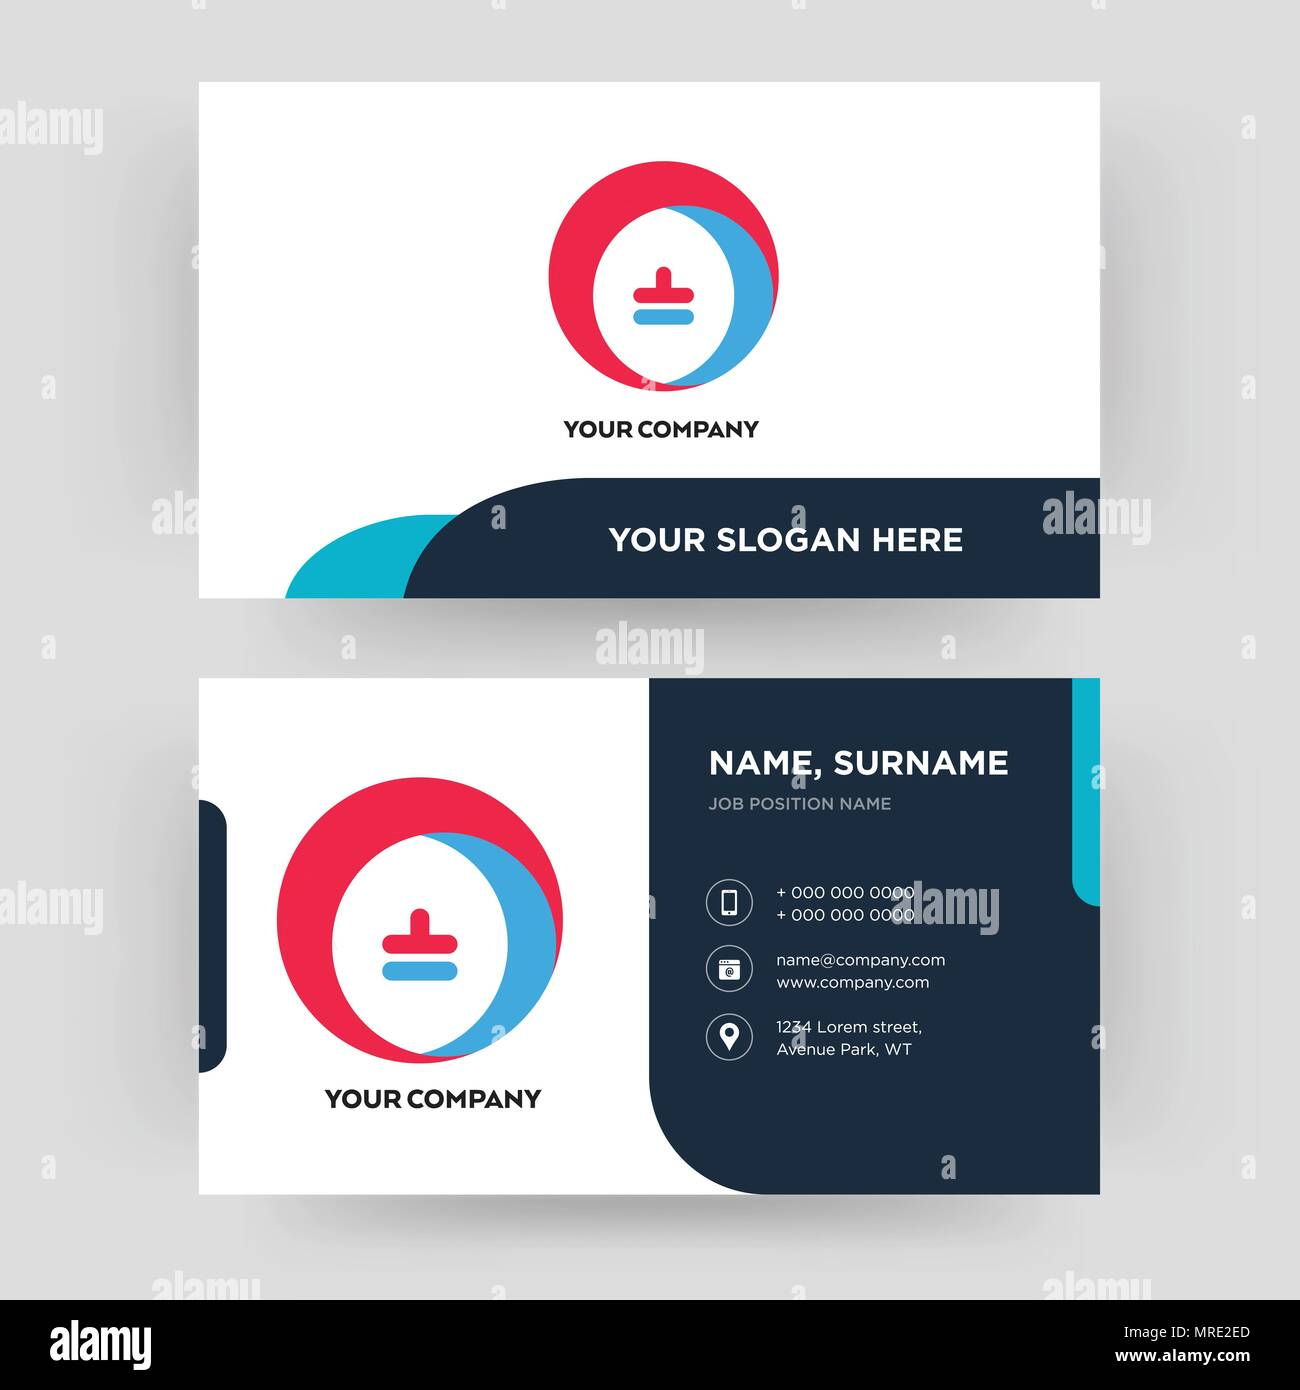 Heating cooling business card design template visiting for your heating cooling business card design template visiting for your company modern creative and clean identity card vector reheart Image collections